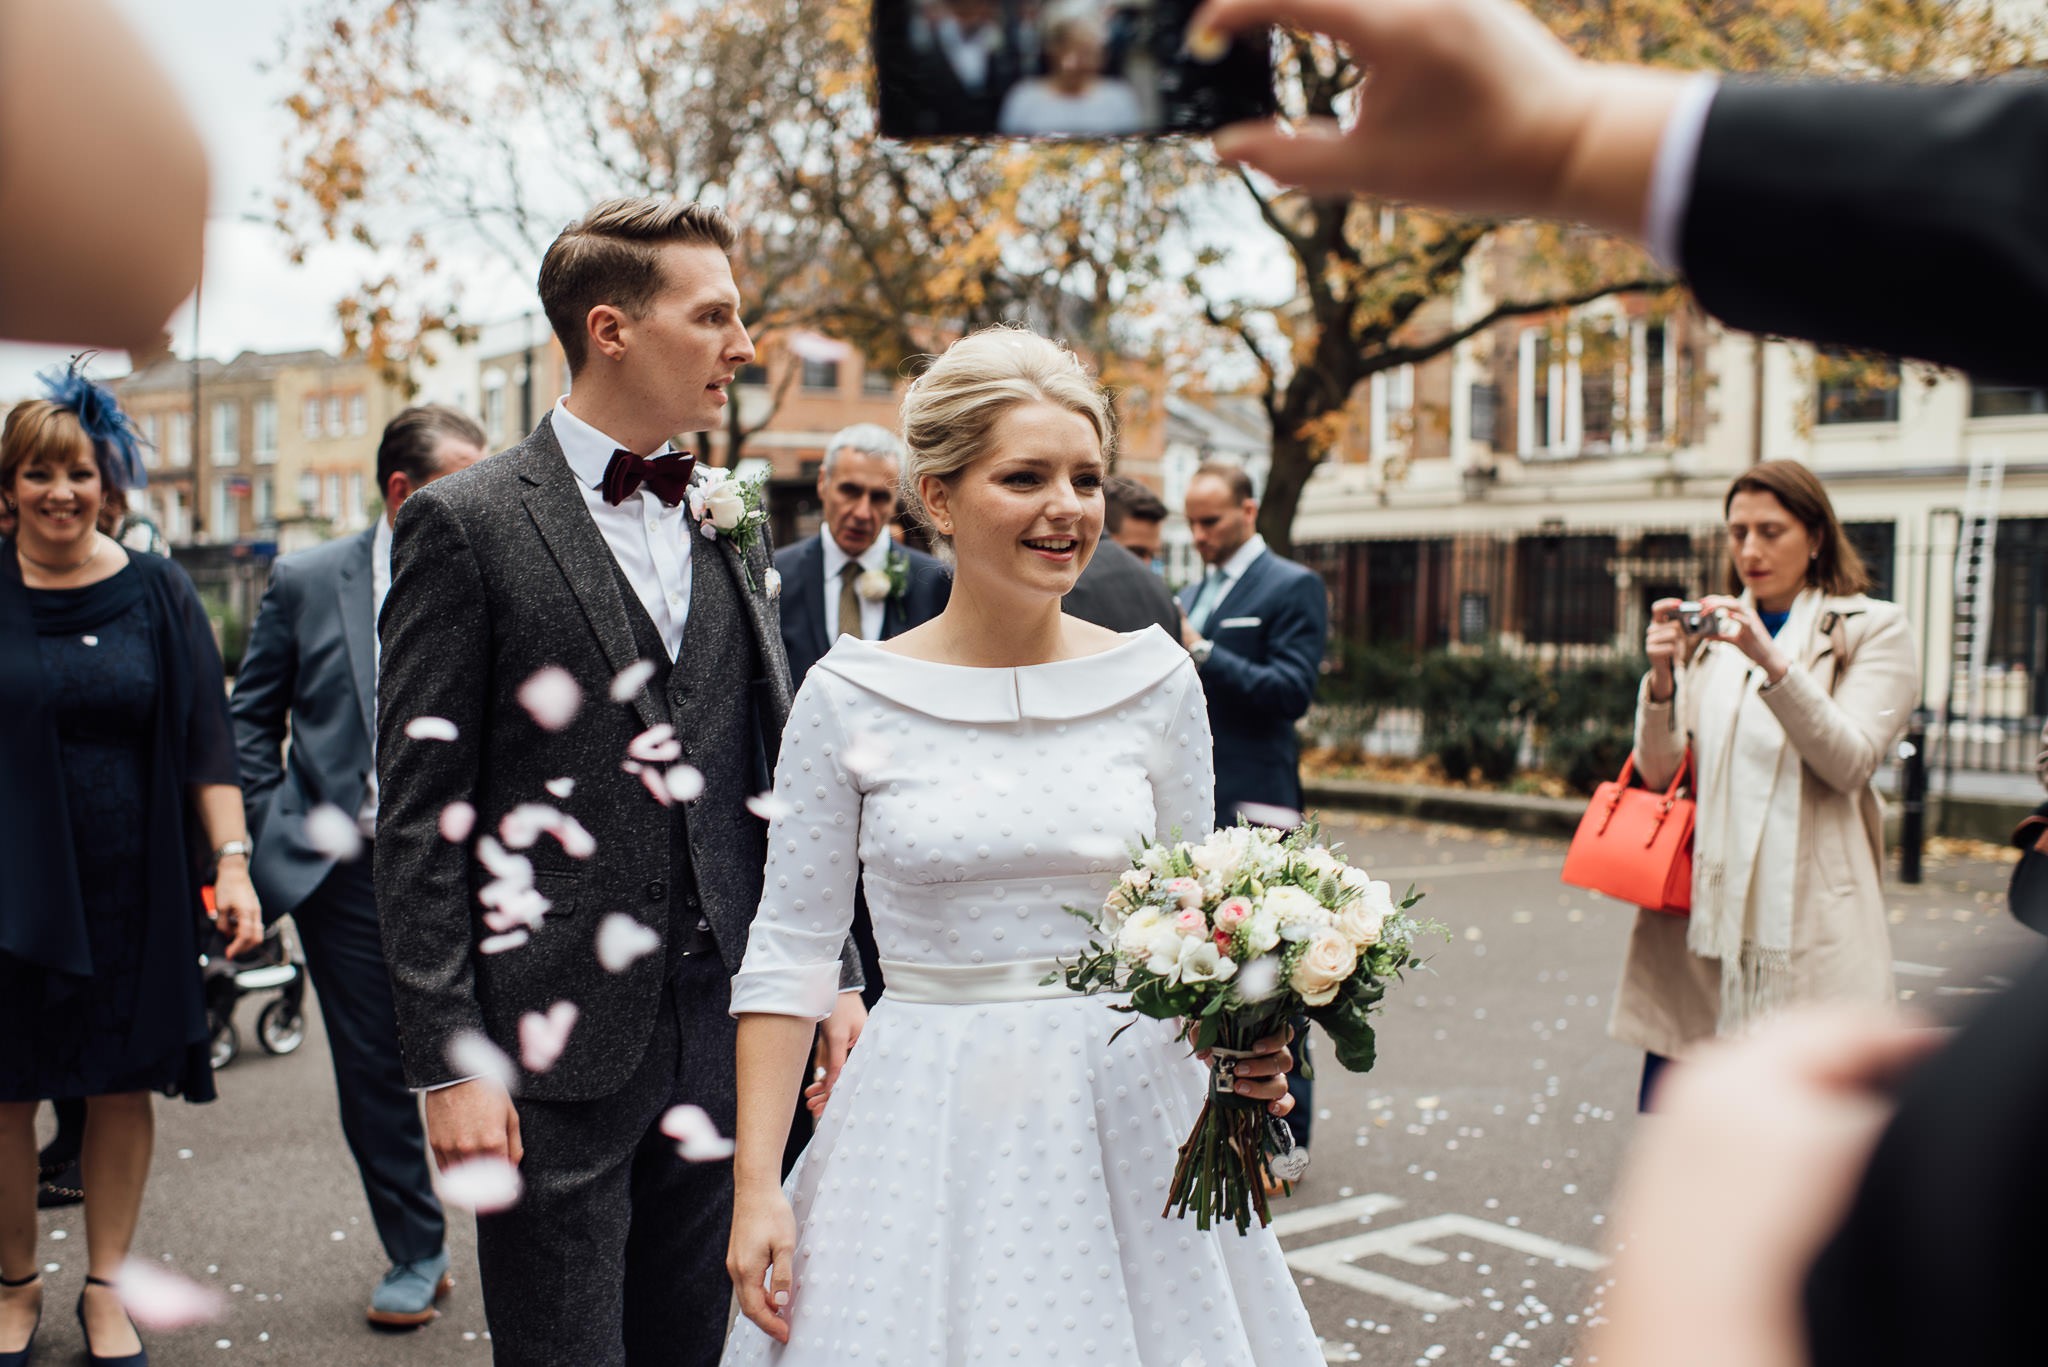 Brides flowers in stoke newington town hall wedding by creative and alternative london wedding photographer the shannons photography